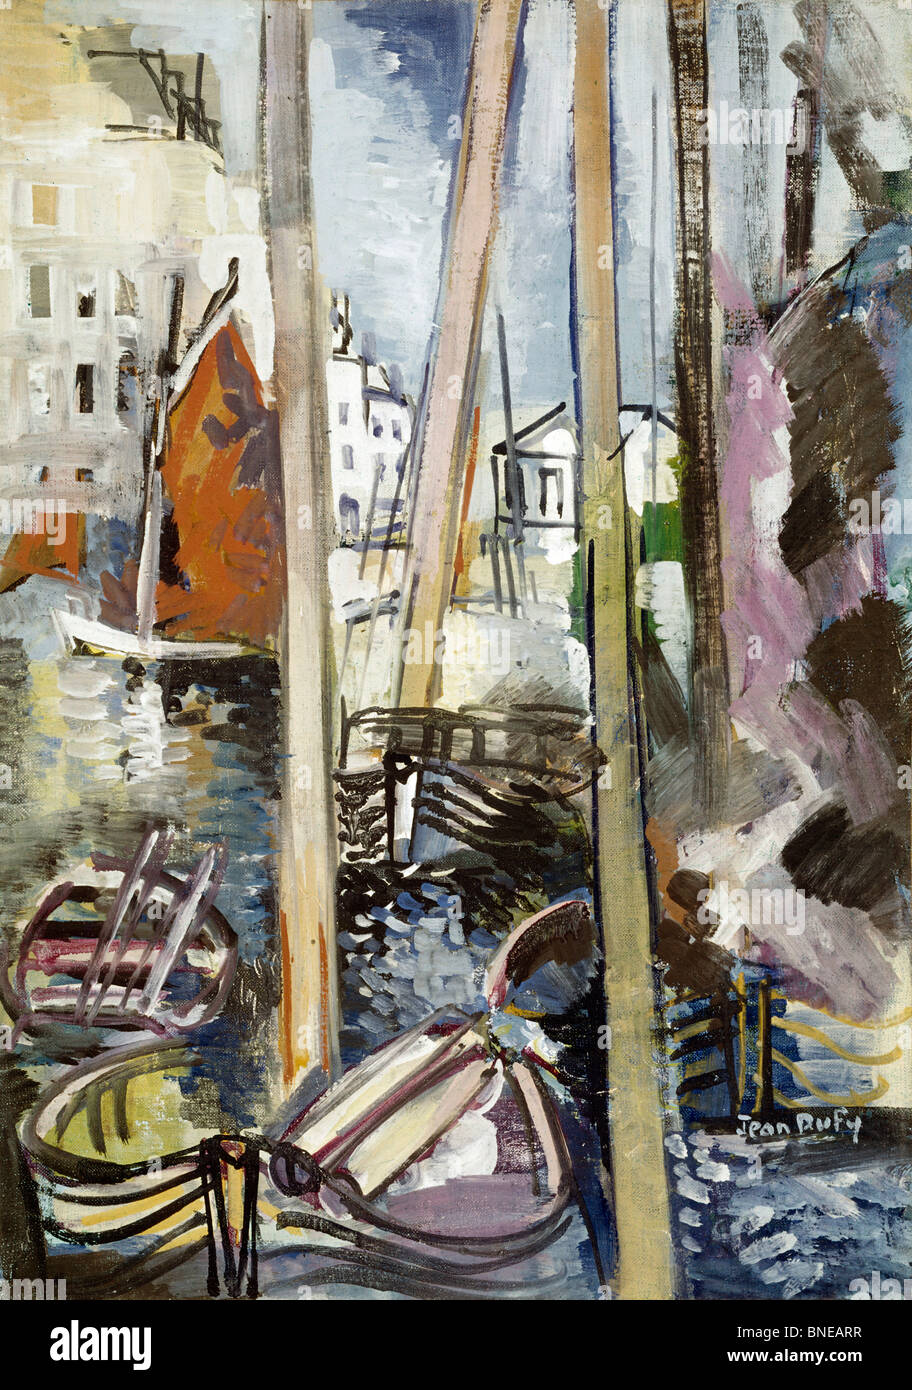 Yachting Basin,  by Jean Dufy,  (1888-1964) - Stock Image